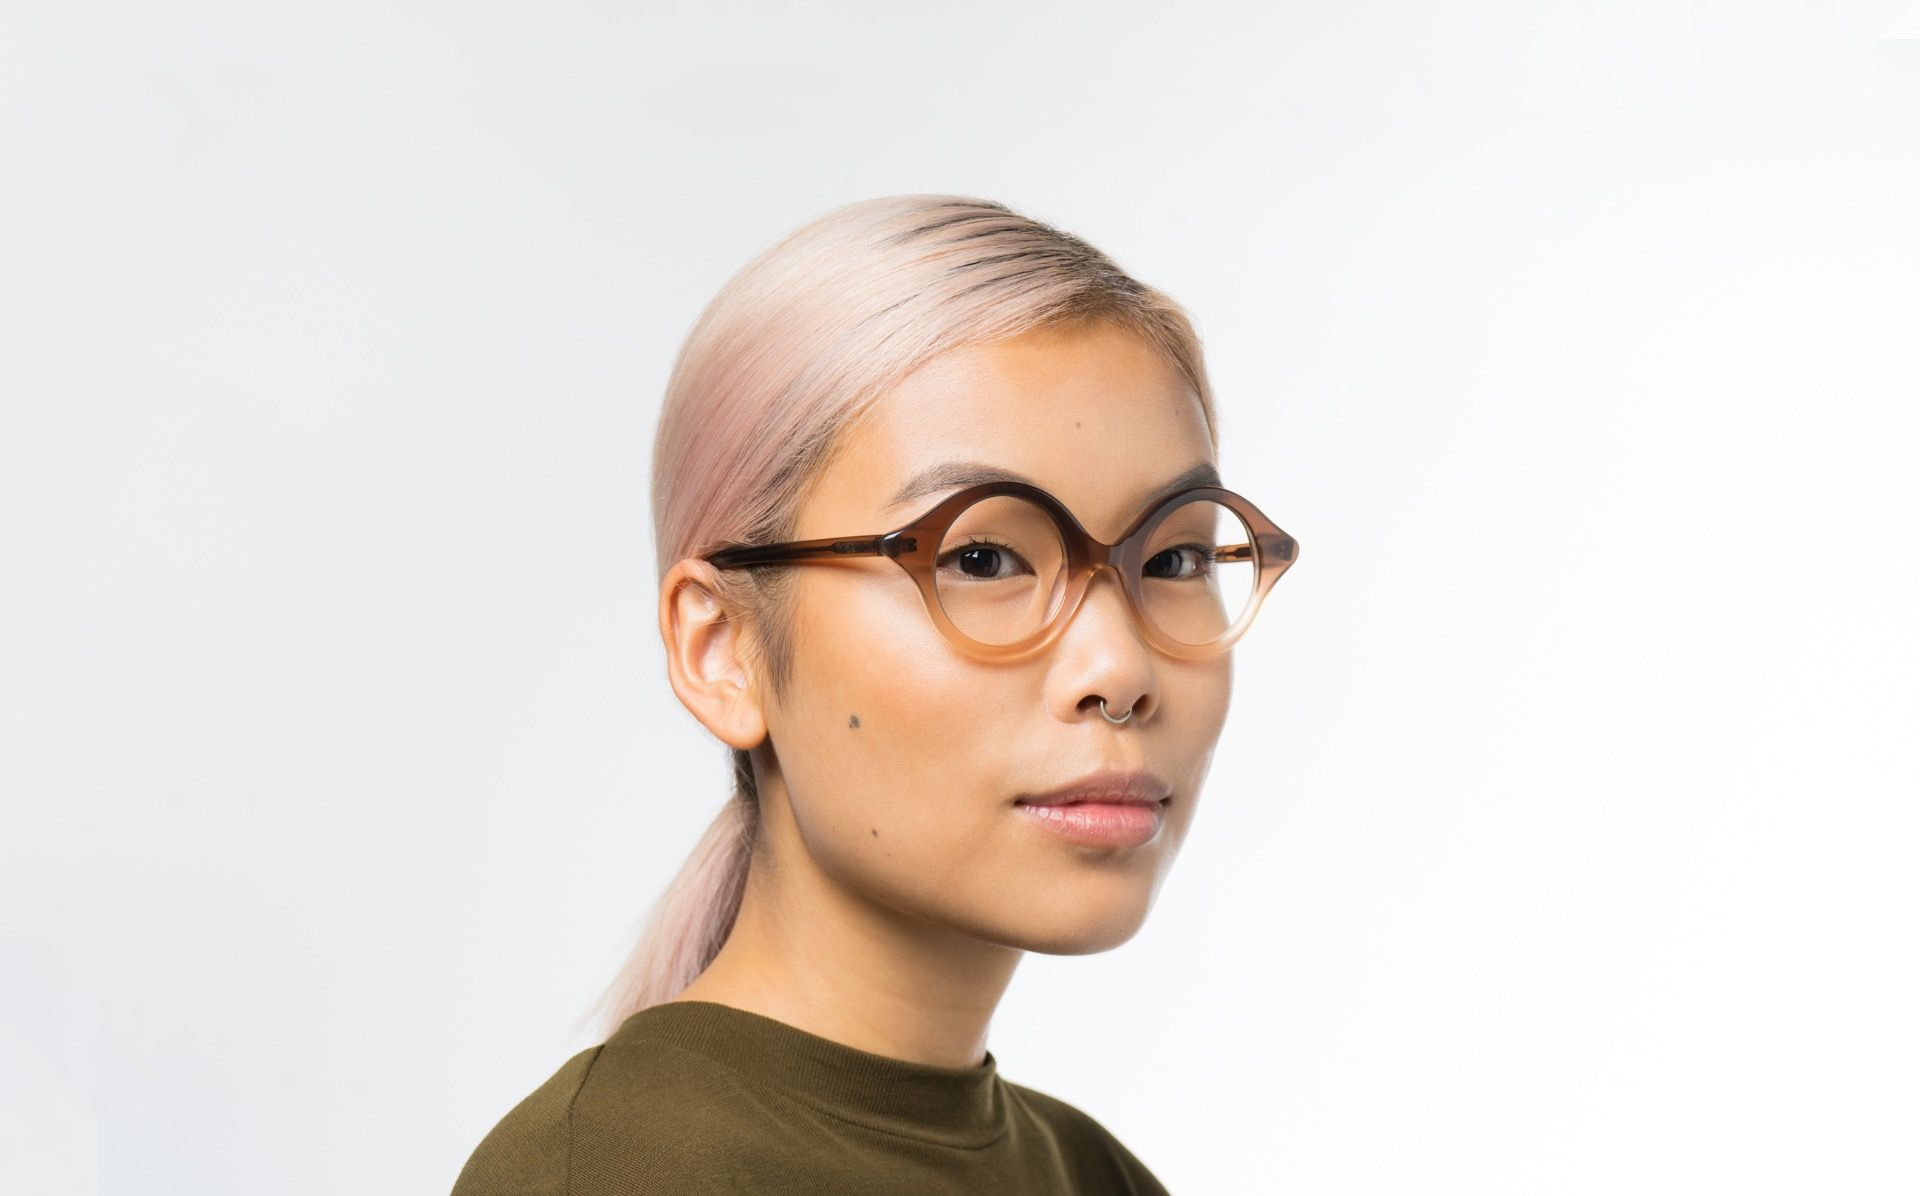 kiko polette glasses model view 02 crop